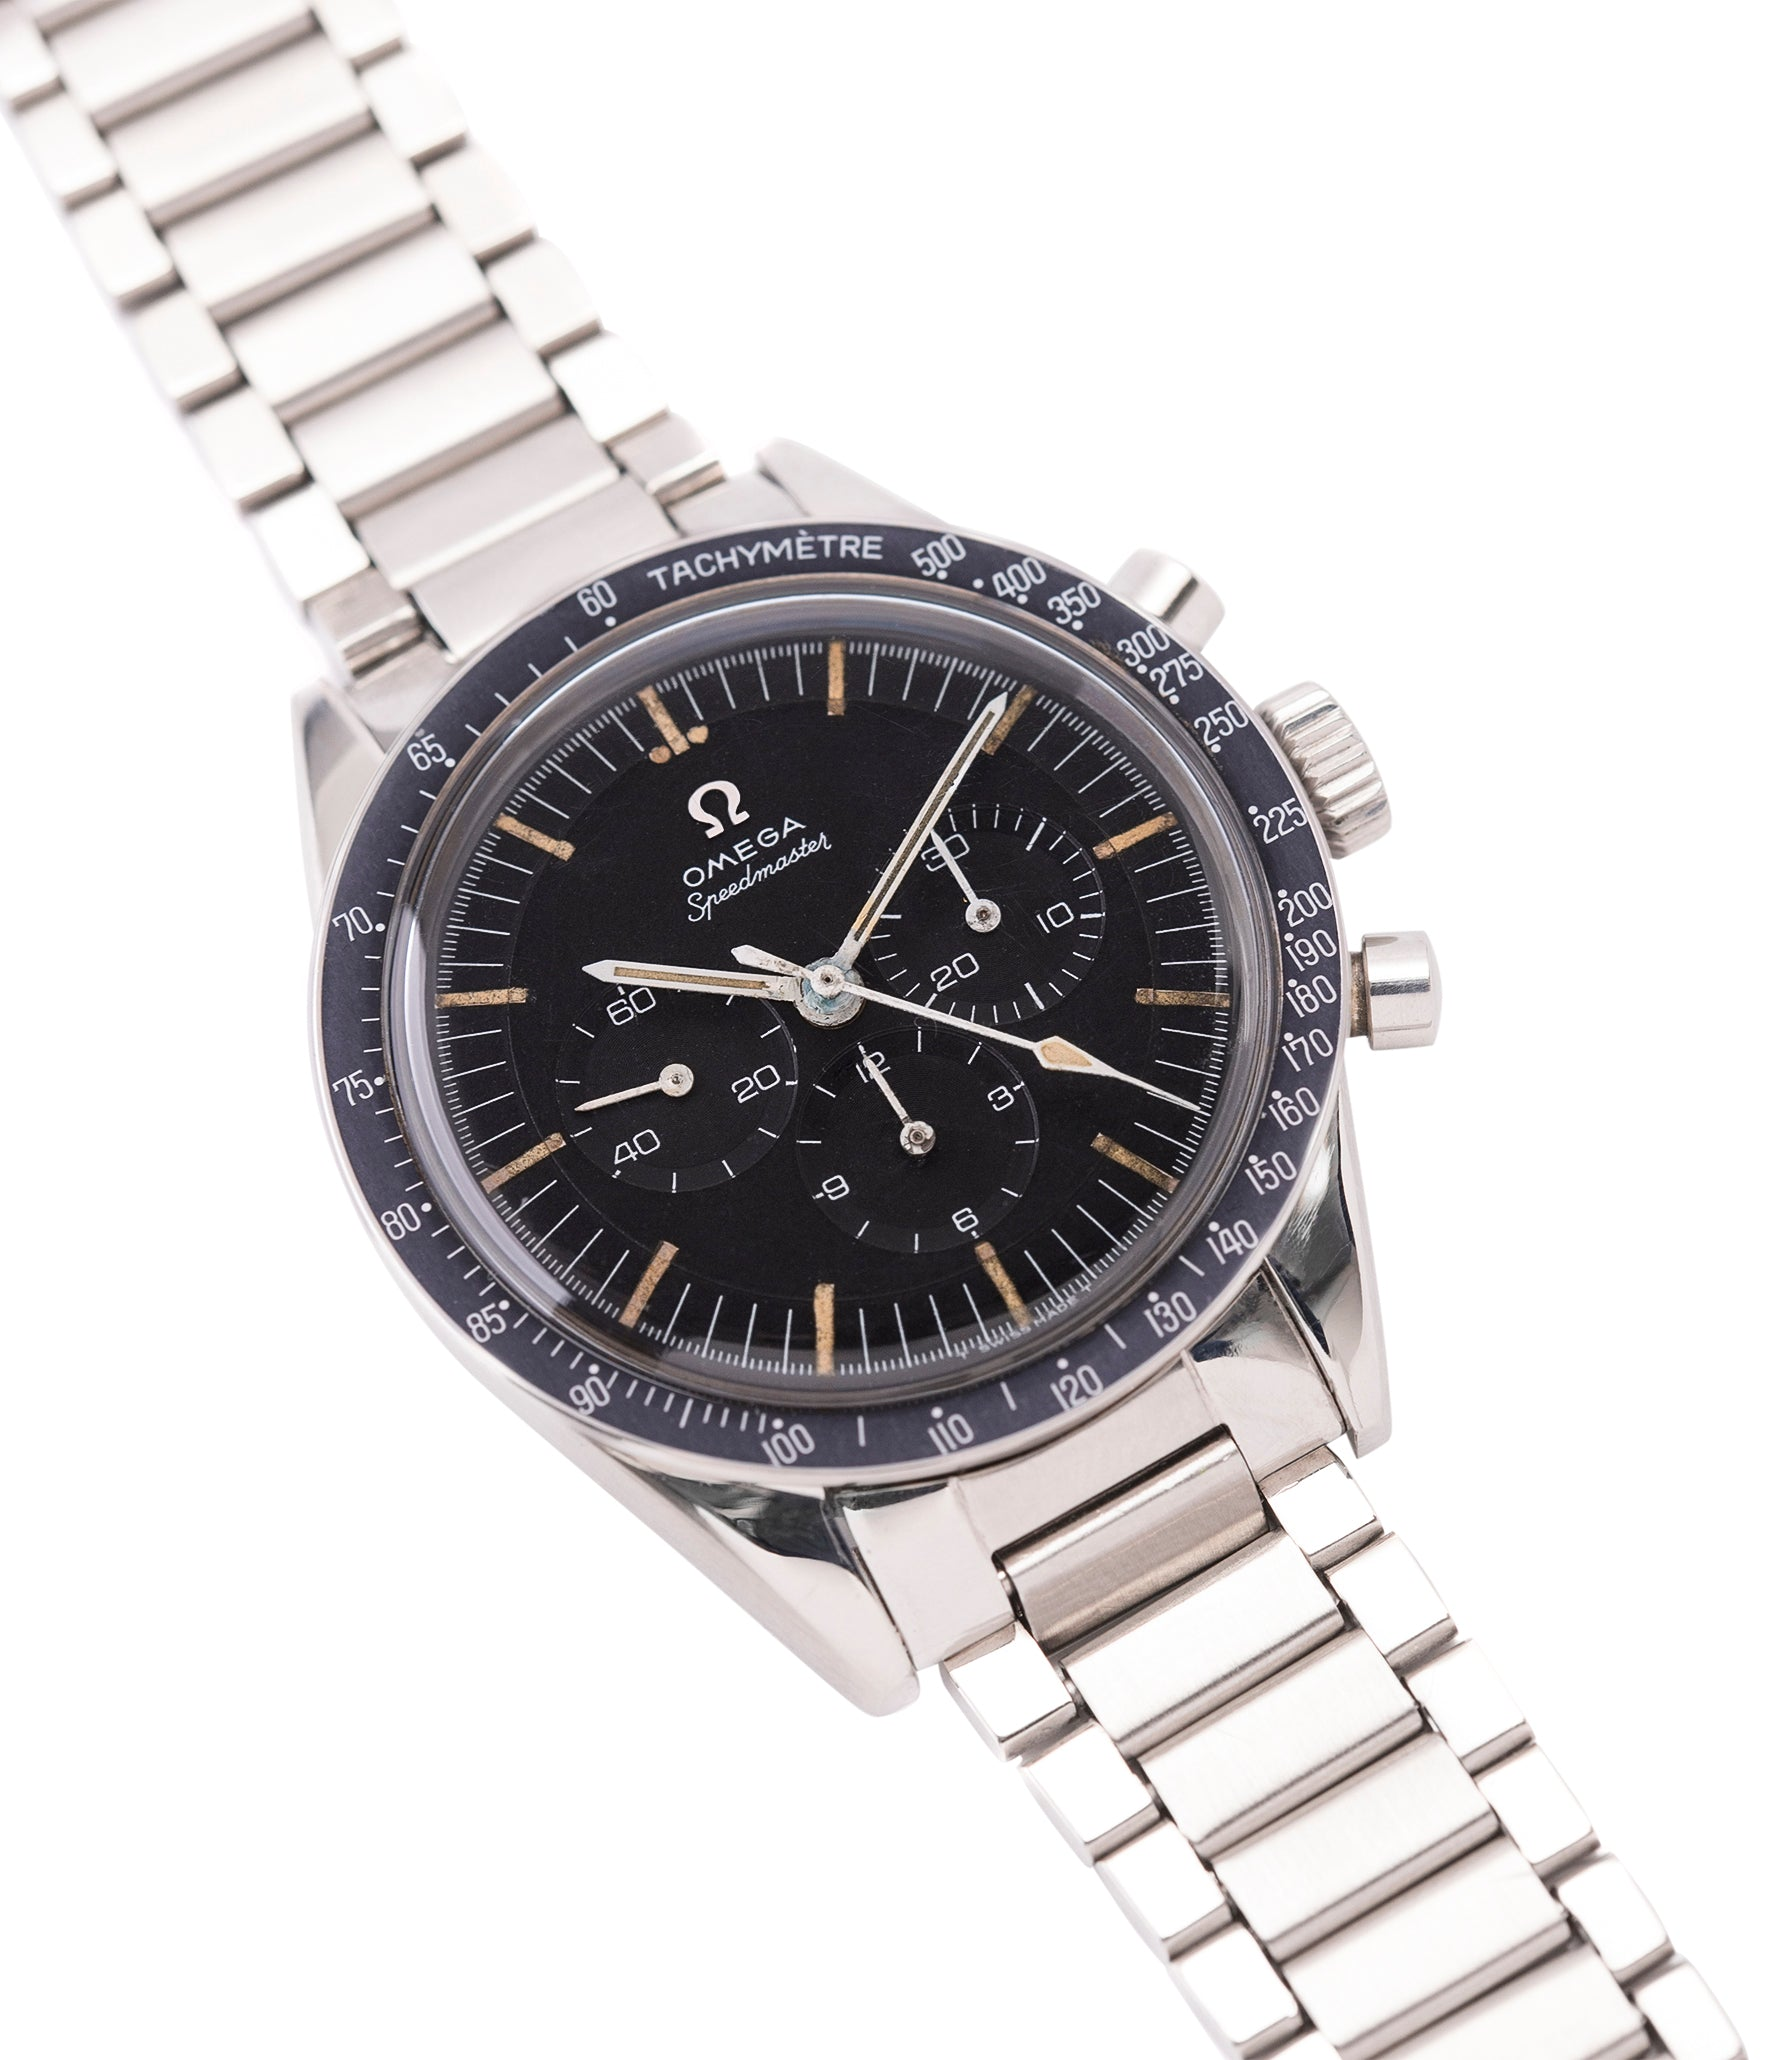 selling vintage Omega Speedmaster Pre-Professional Ed White 105003 steel vintage chronograph 7912 flat-link bracelet for sale online at A Collected Man UK specialist of rare vintage watches